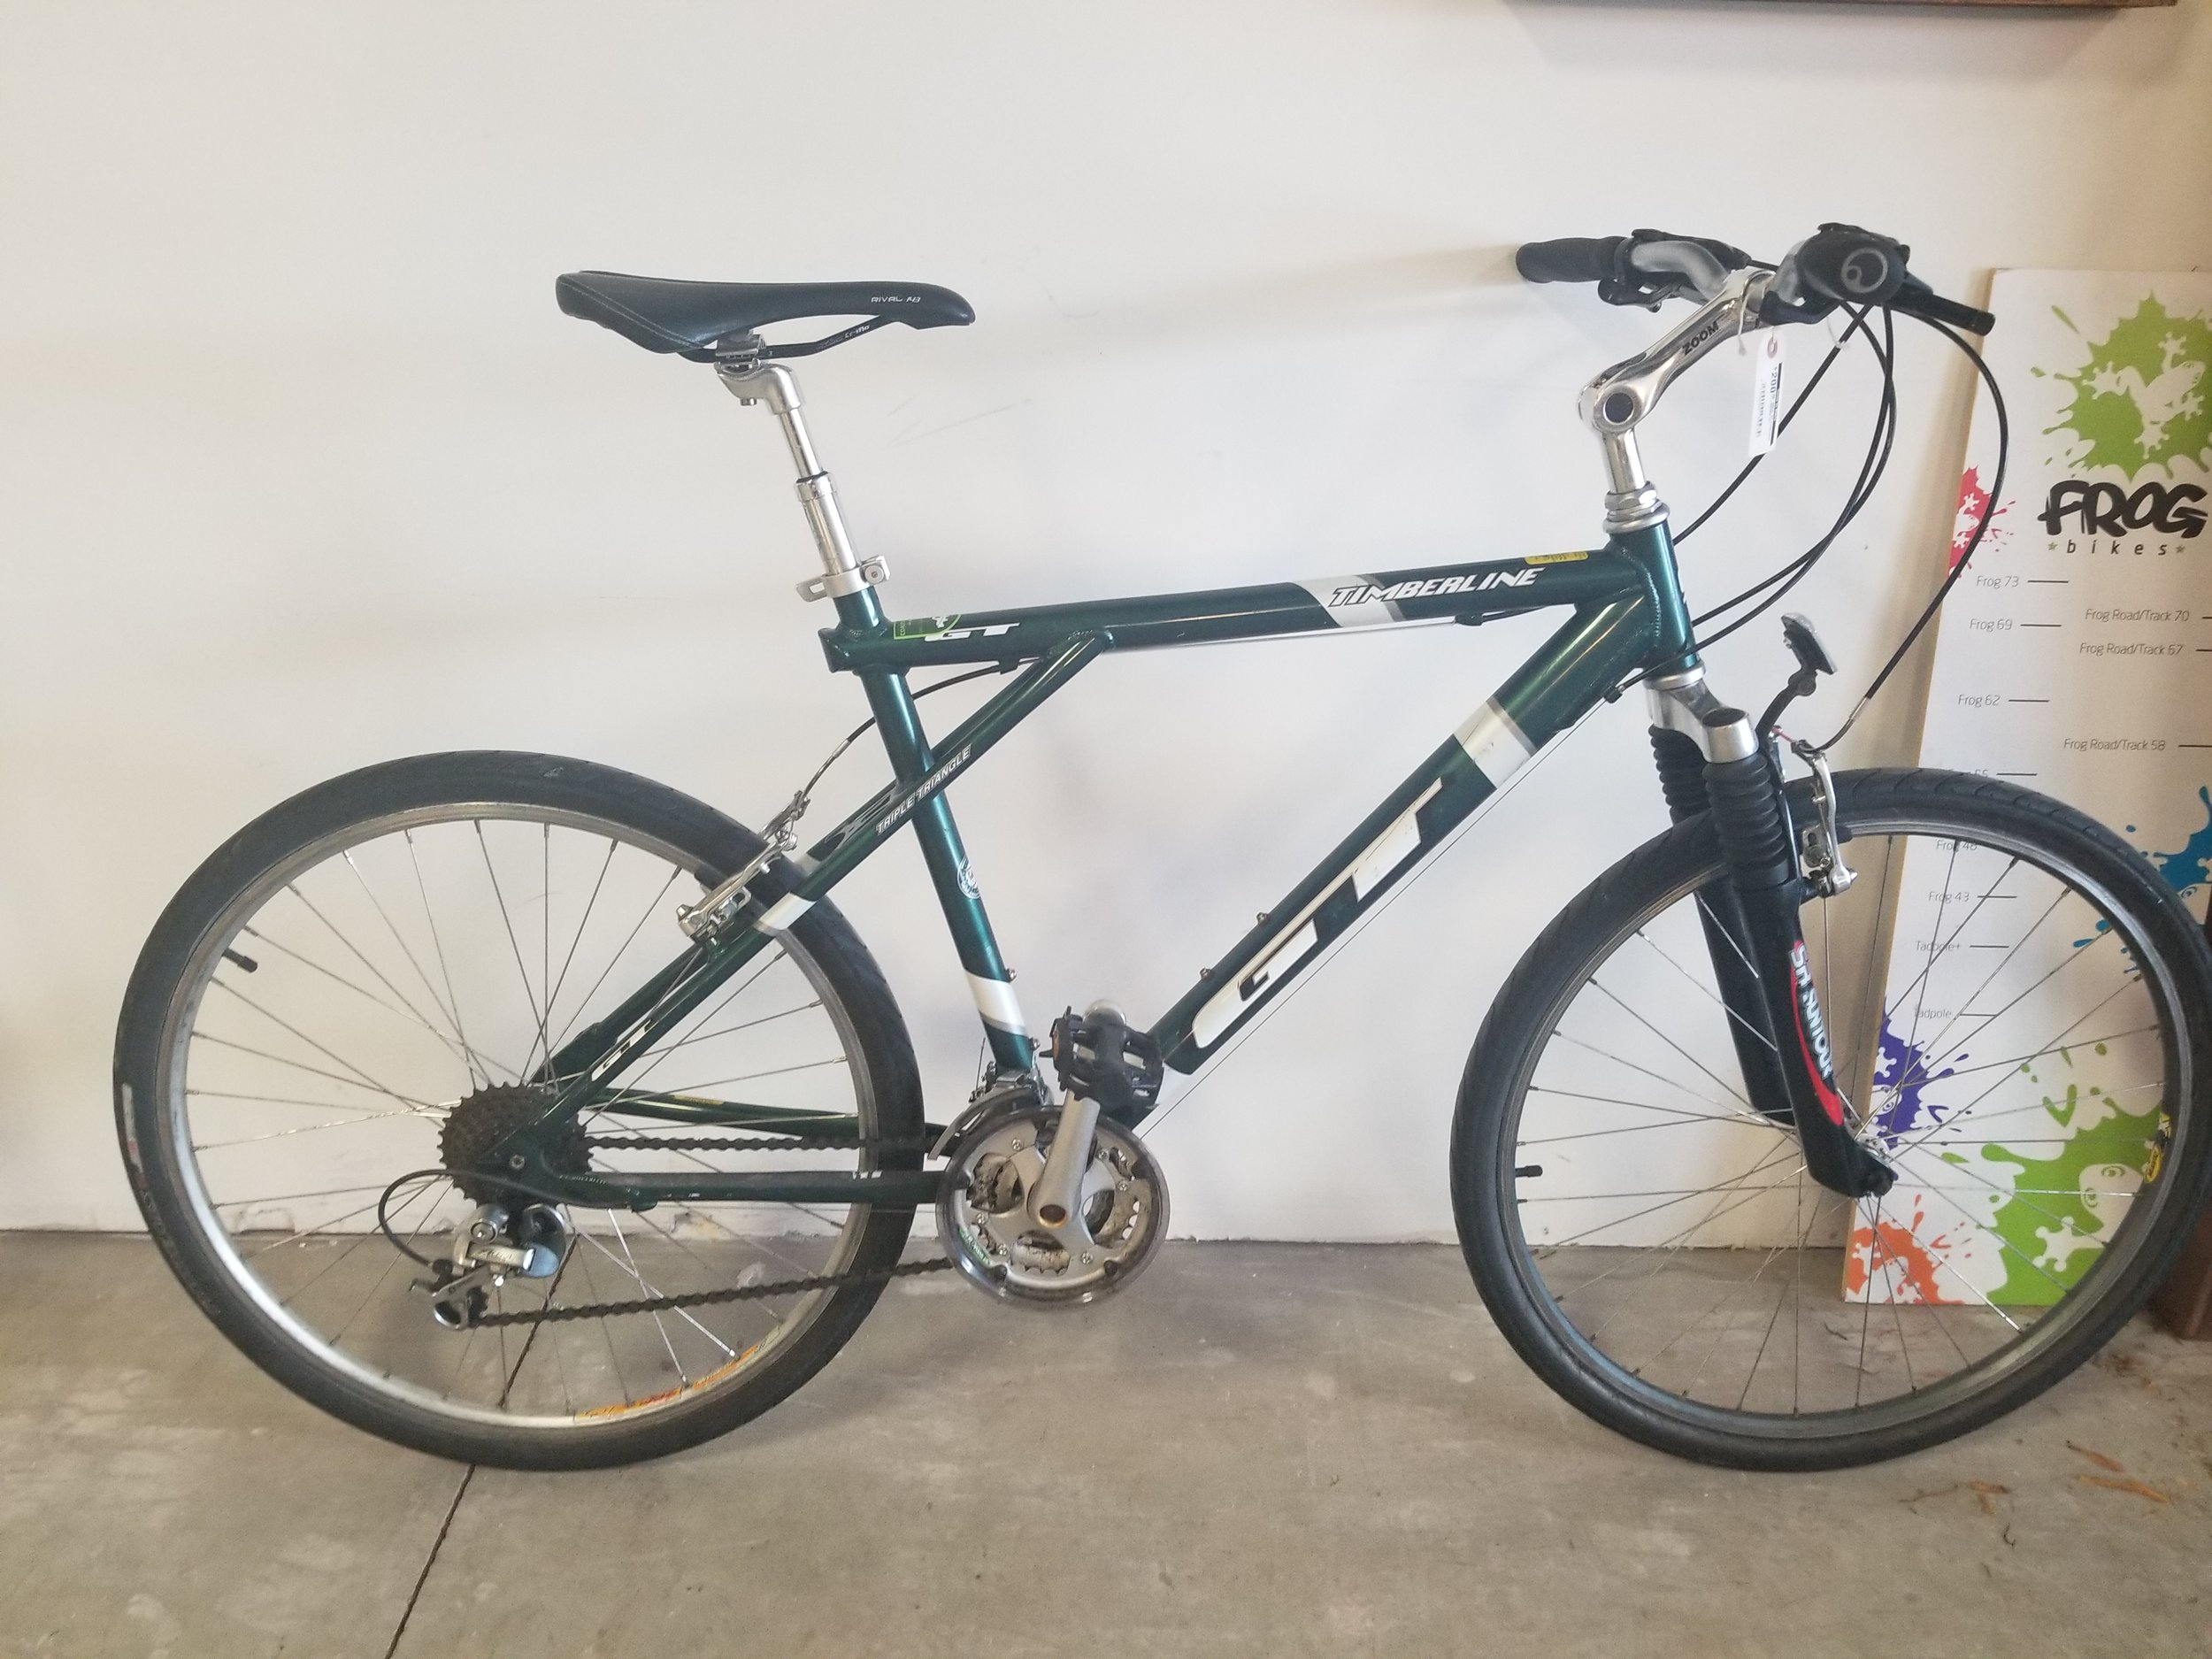 """GT timberline mtn bike 15"""" - Used bike. Tuned-up. Great commuter and winter bike!$200"""